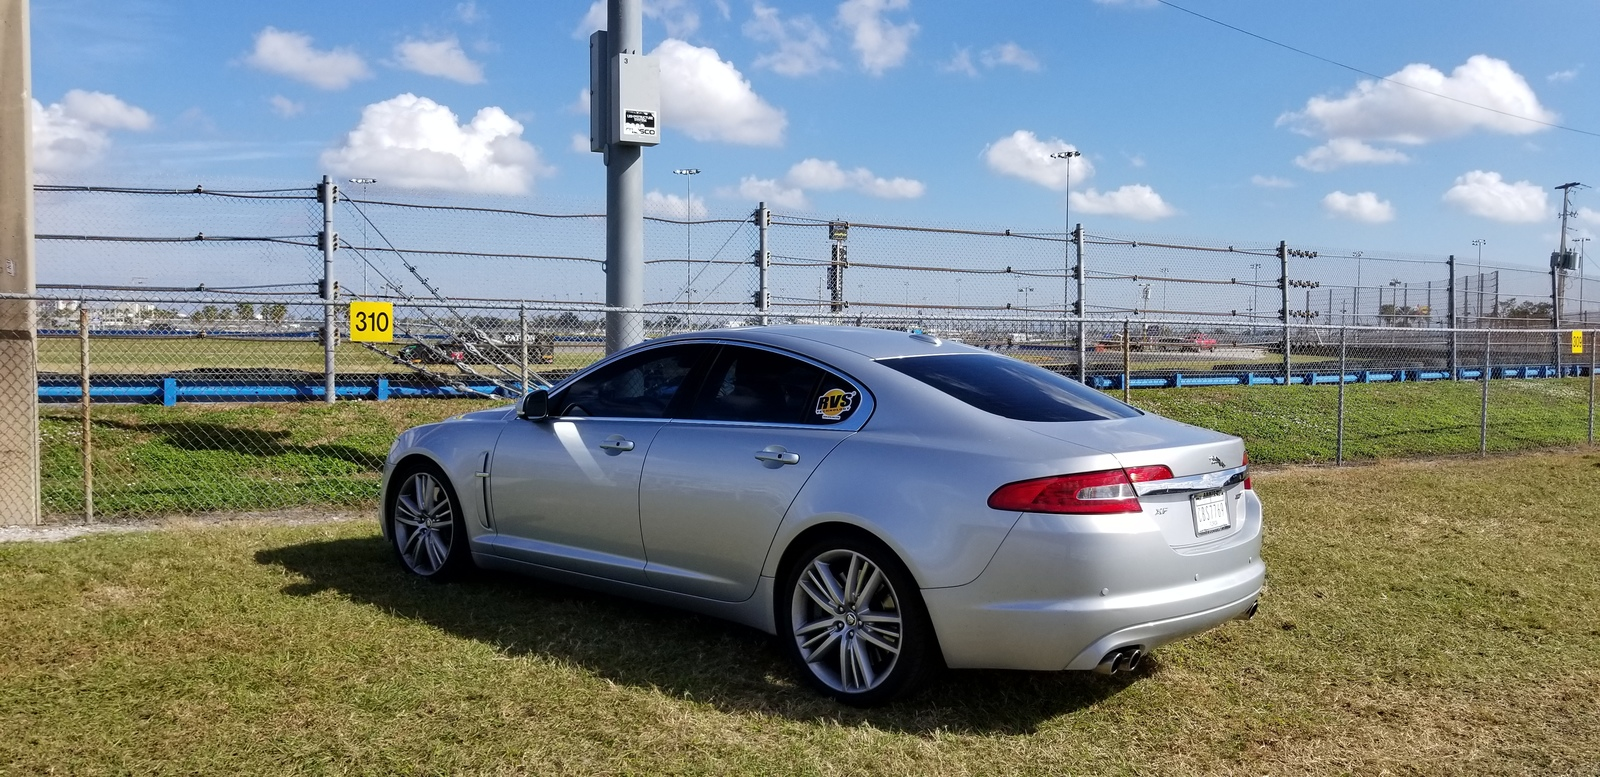 Silver  2010 Jaguar XF 5.0 Supercharged